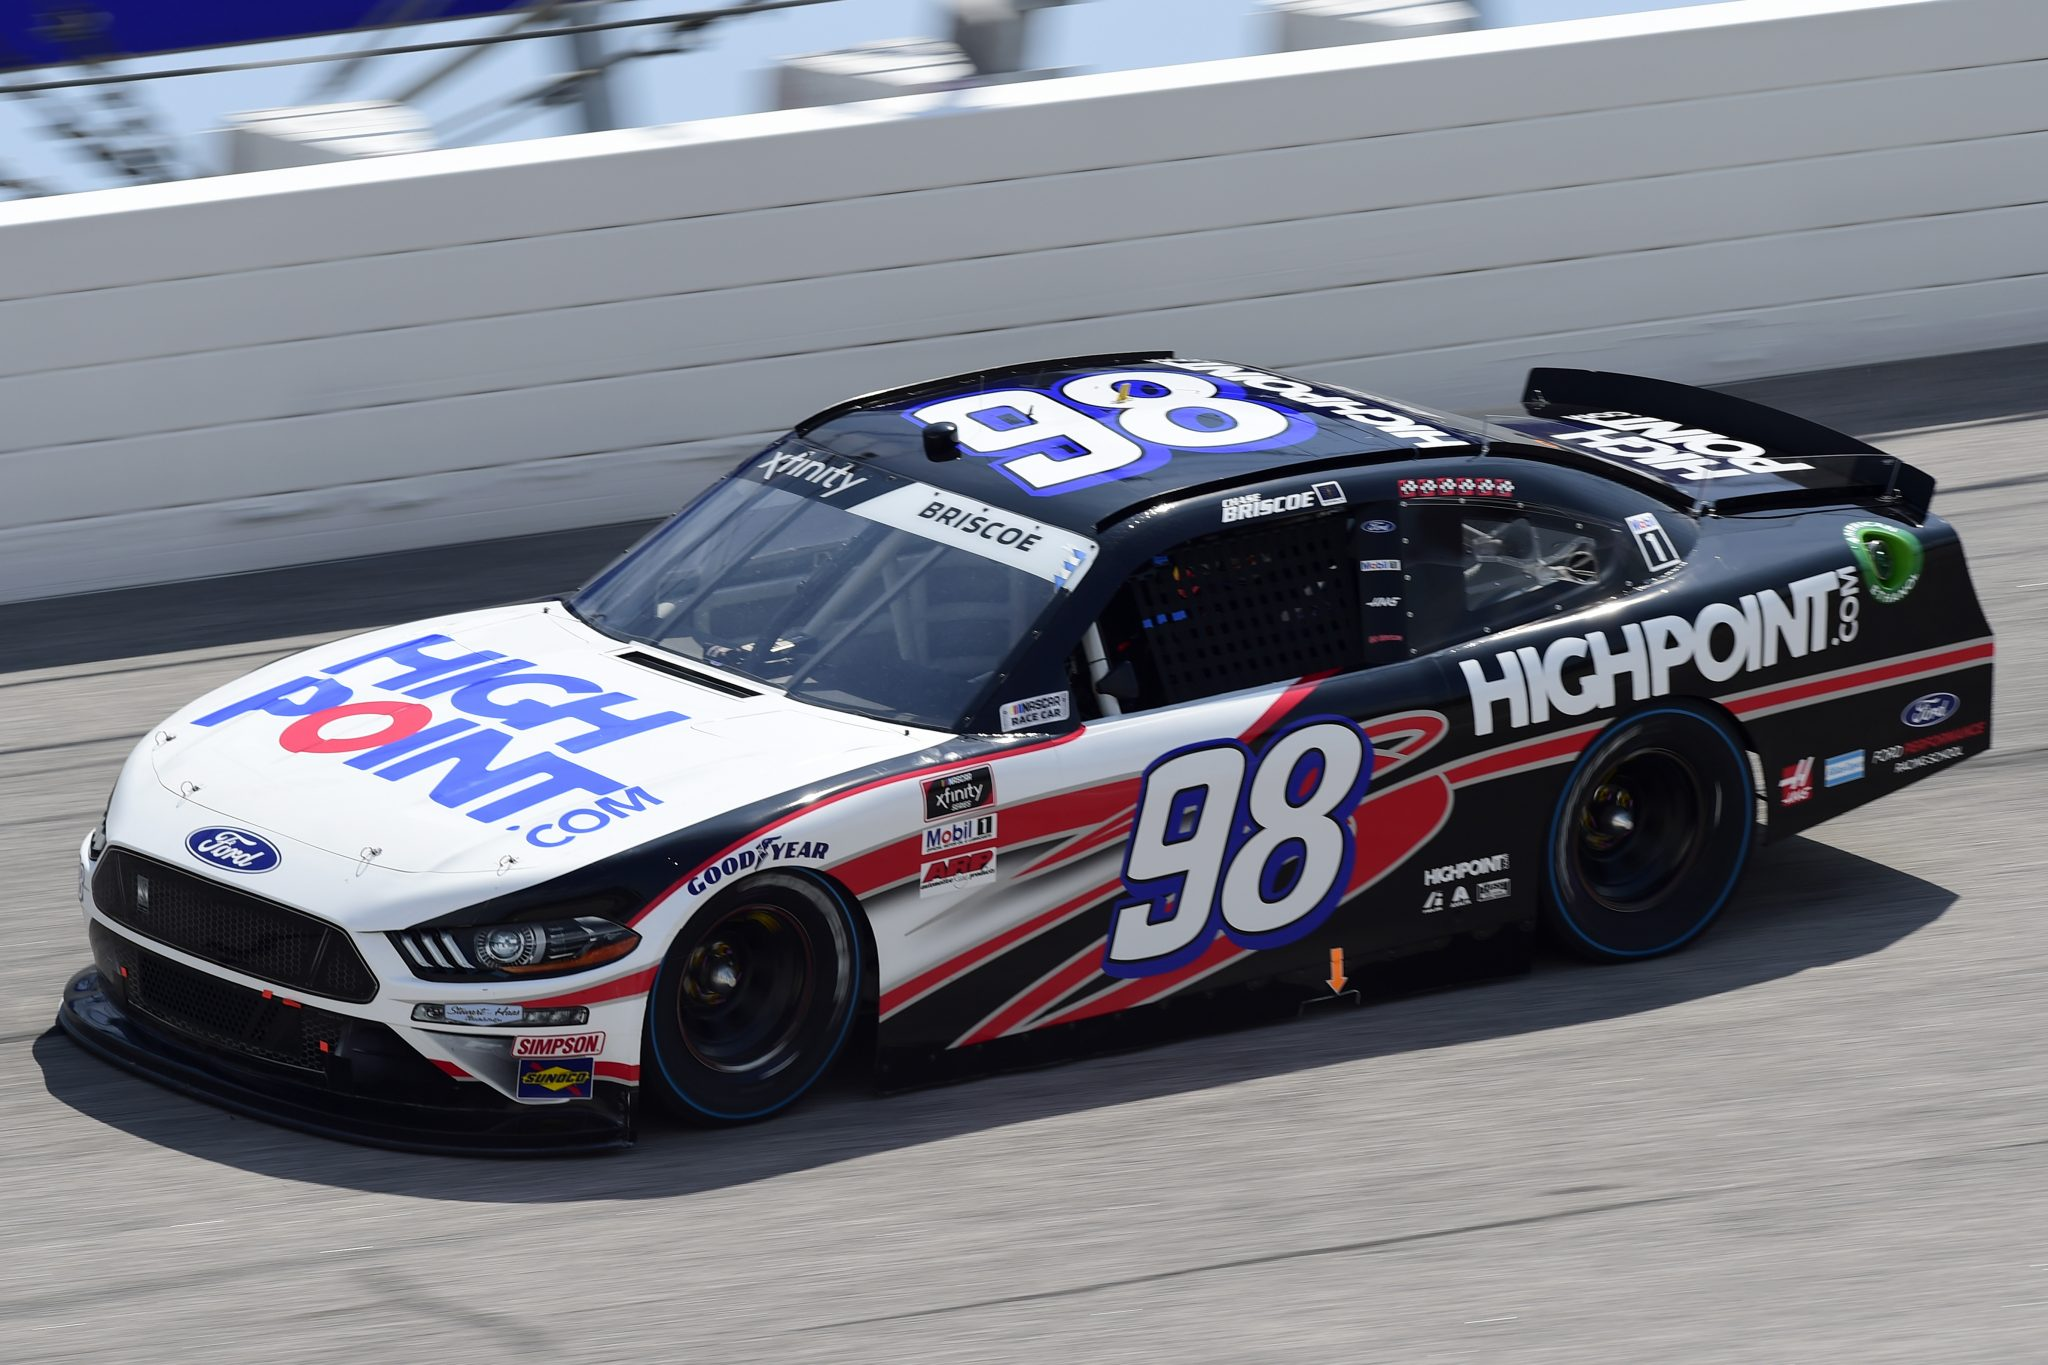 DARLINGTON, SOUTH CAROLINA - SEPTEMBER 05: Chase Briscoe, driver of the #98 Highpoint.com Ford, drives during the NASCAR Xfinity Series Sport Clips Haircuts VFW 200 at Darlington Raceway on September 05, 2020 in Darlington, South Carolina. (Photo by Jared C. Tilton/Getty Images) | Getty Images